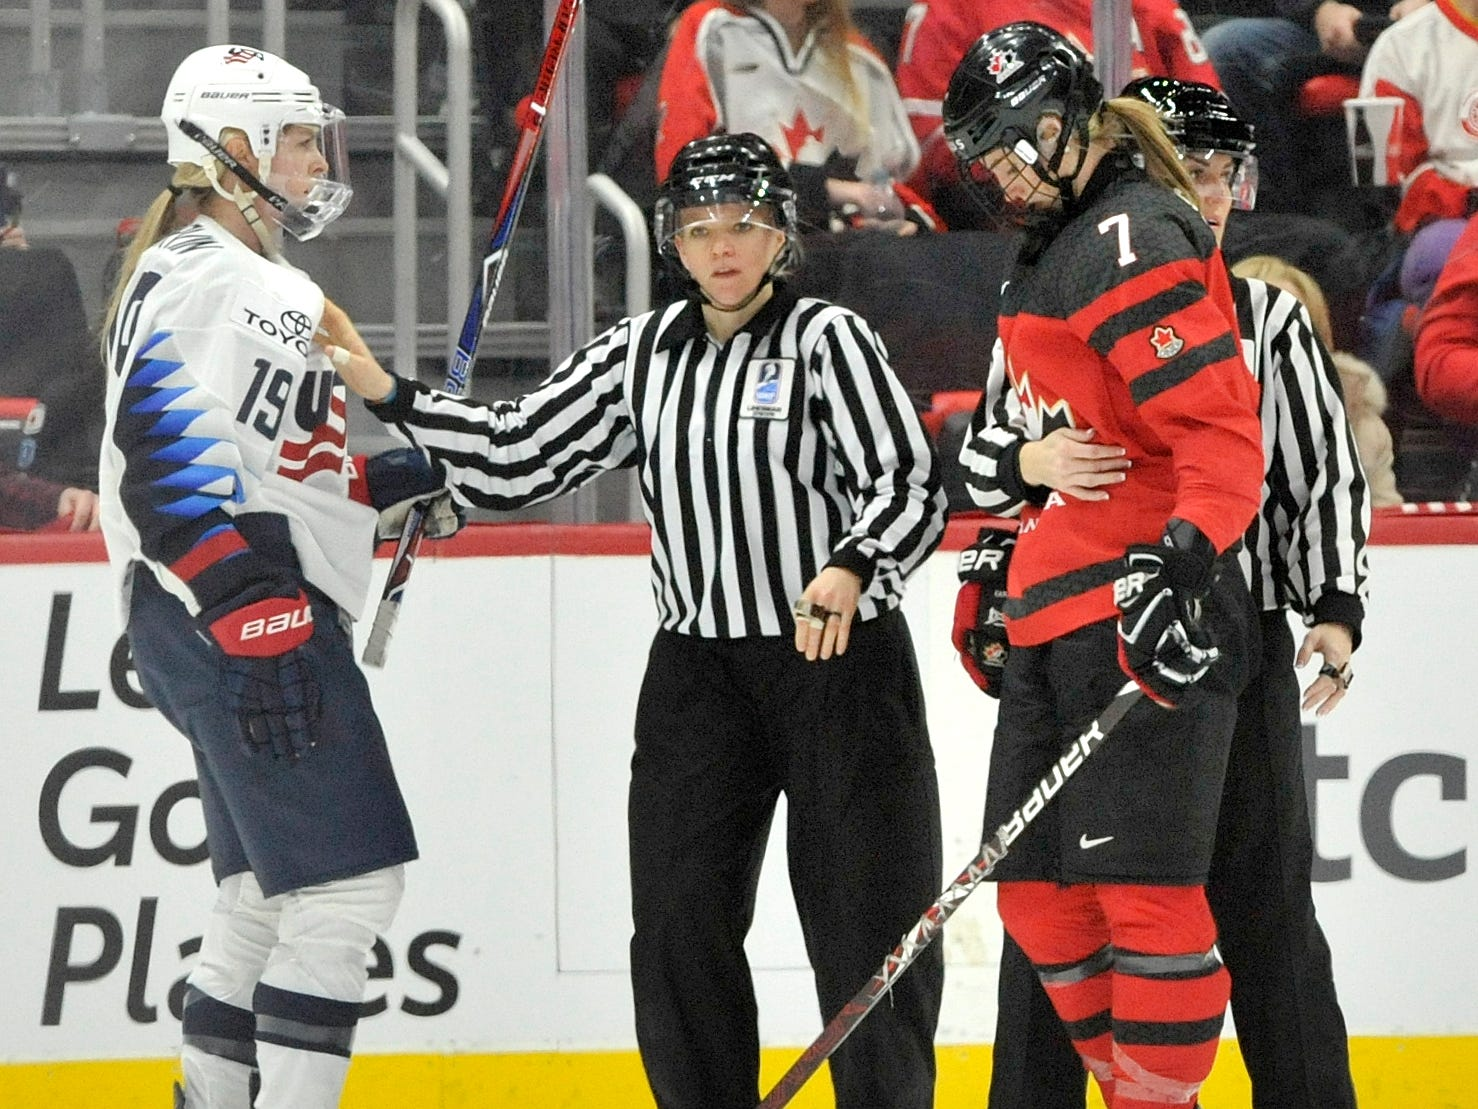 Referees separate Gigi Marvin(19) and Canada's Laura Stacey(7) in the second period.